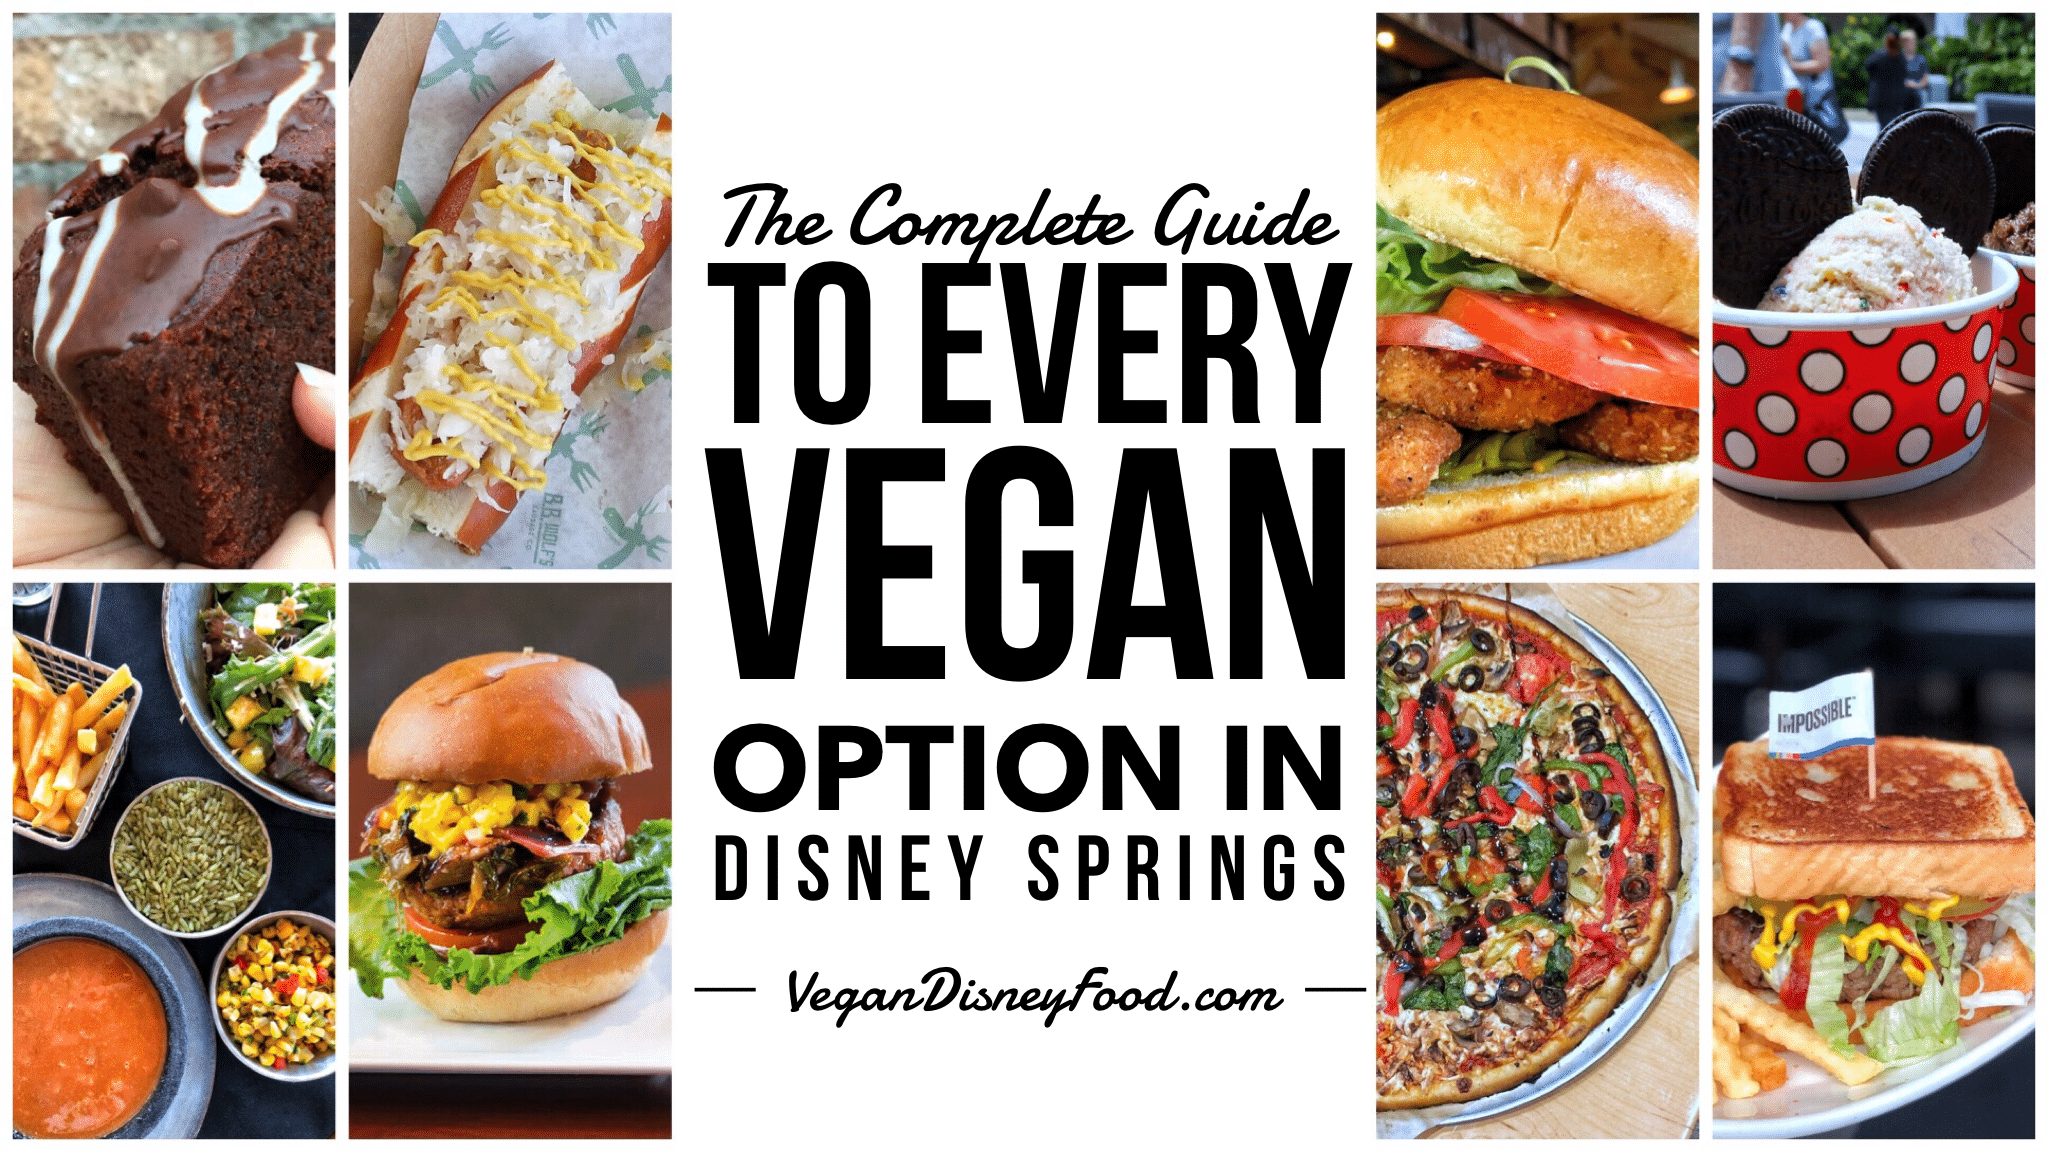 The Complete Guide to Every Vegan Option in Disney Springs at Walt Disney World